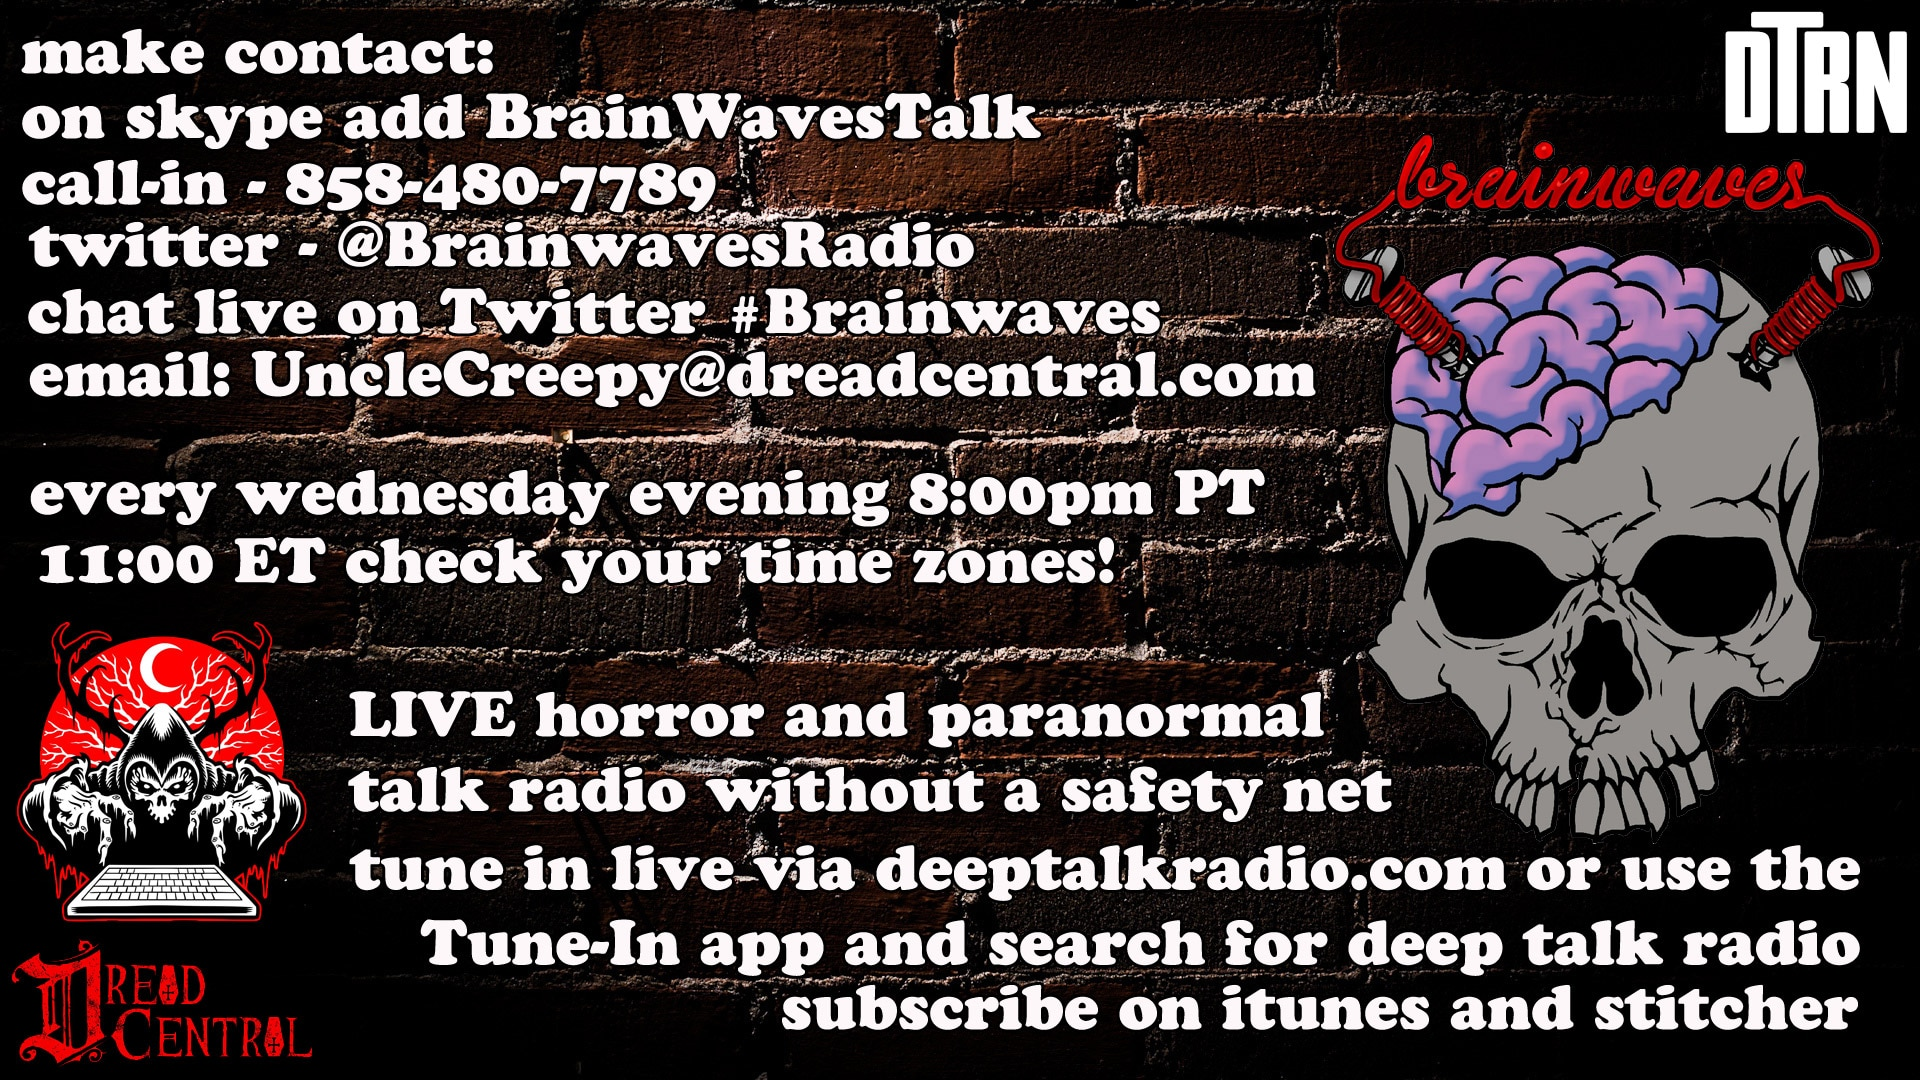 brainwaves updated contact - #Brainwaves Episode 60: Actress Tiffany Shepis - Victor Crowley, Tales of Halloween, Sharknado, and More! LISTEN NOW!